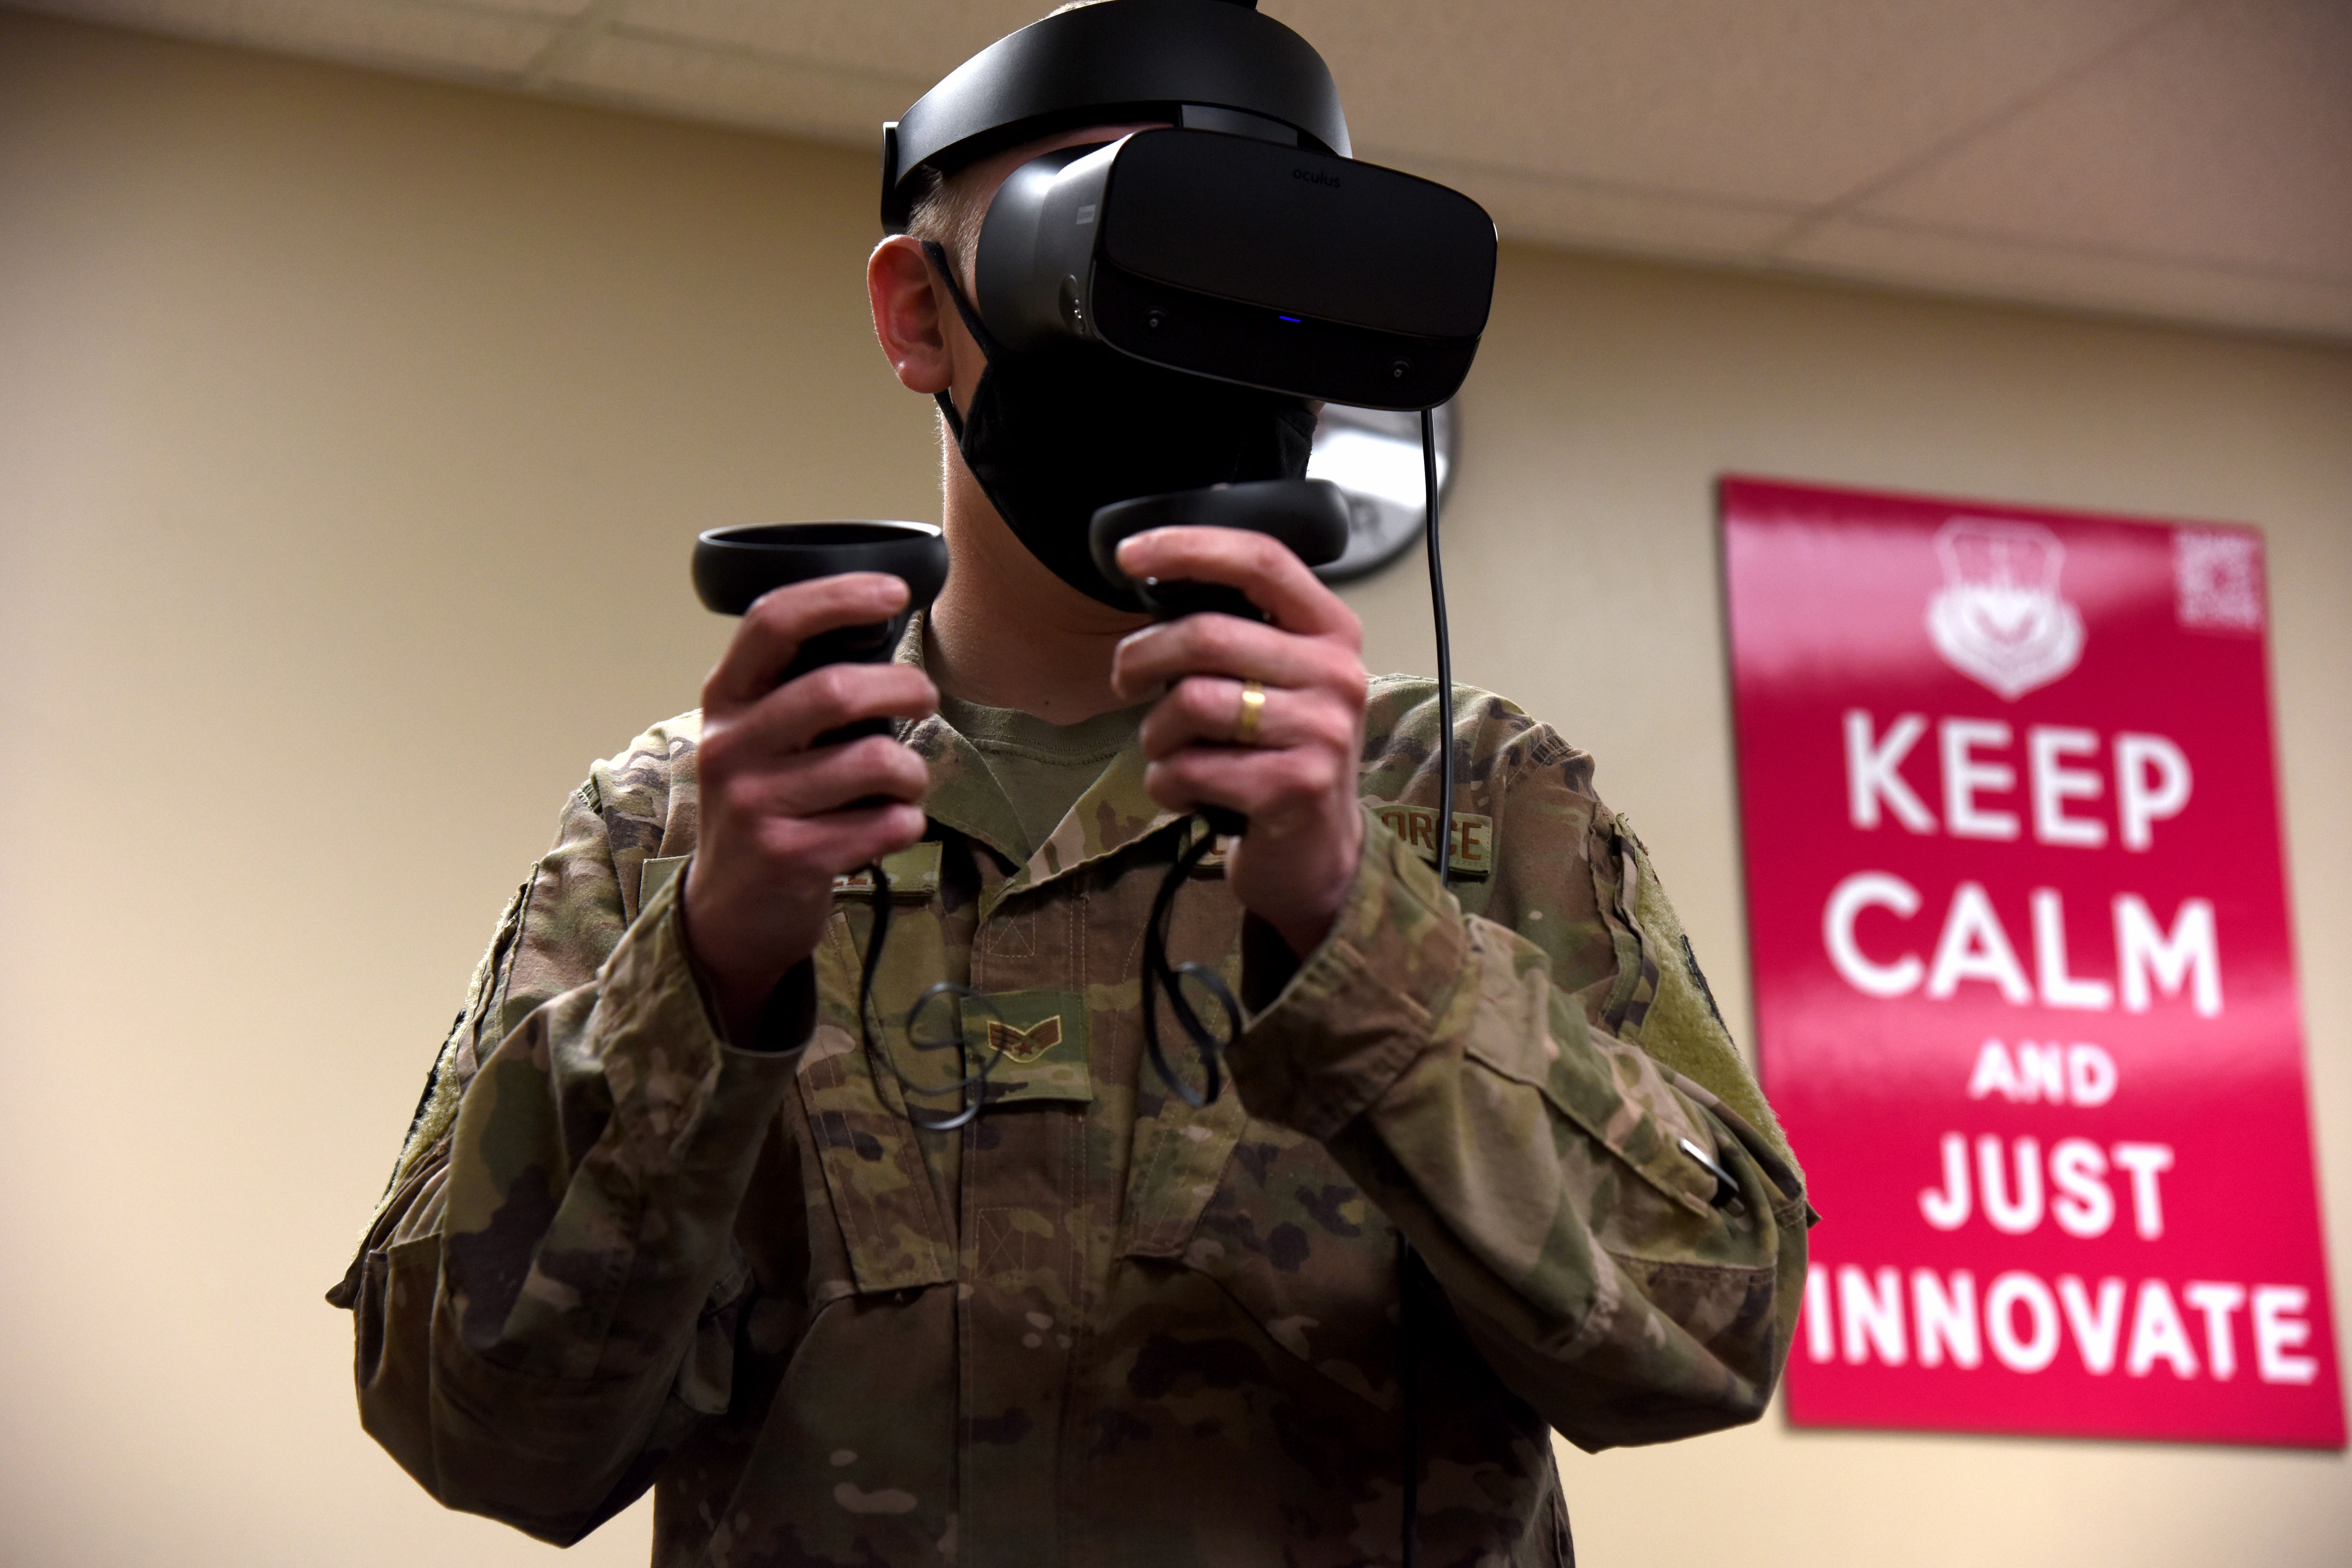 Airman with VR headset